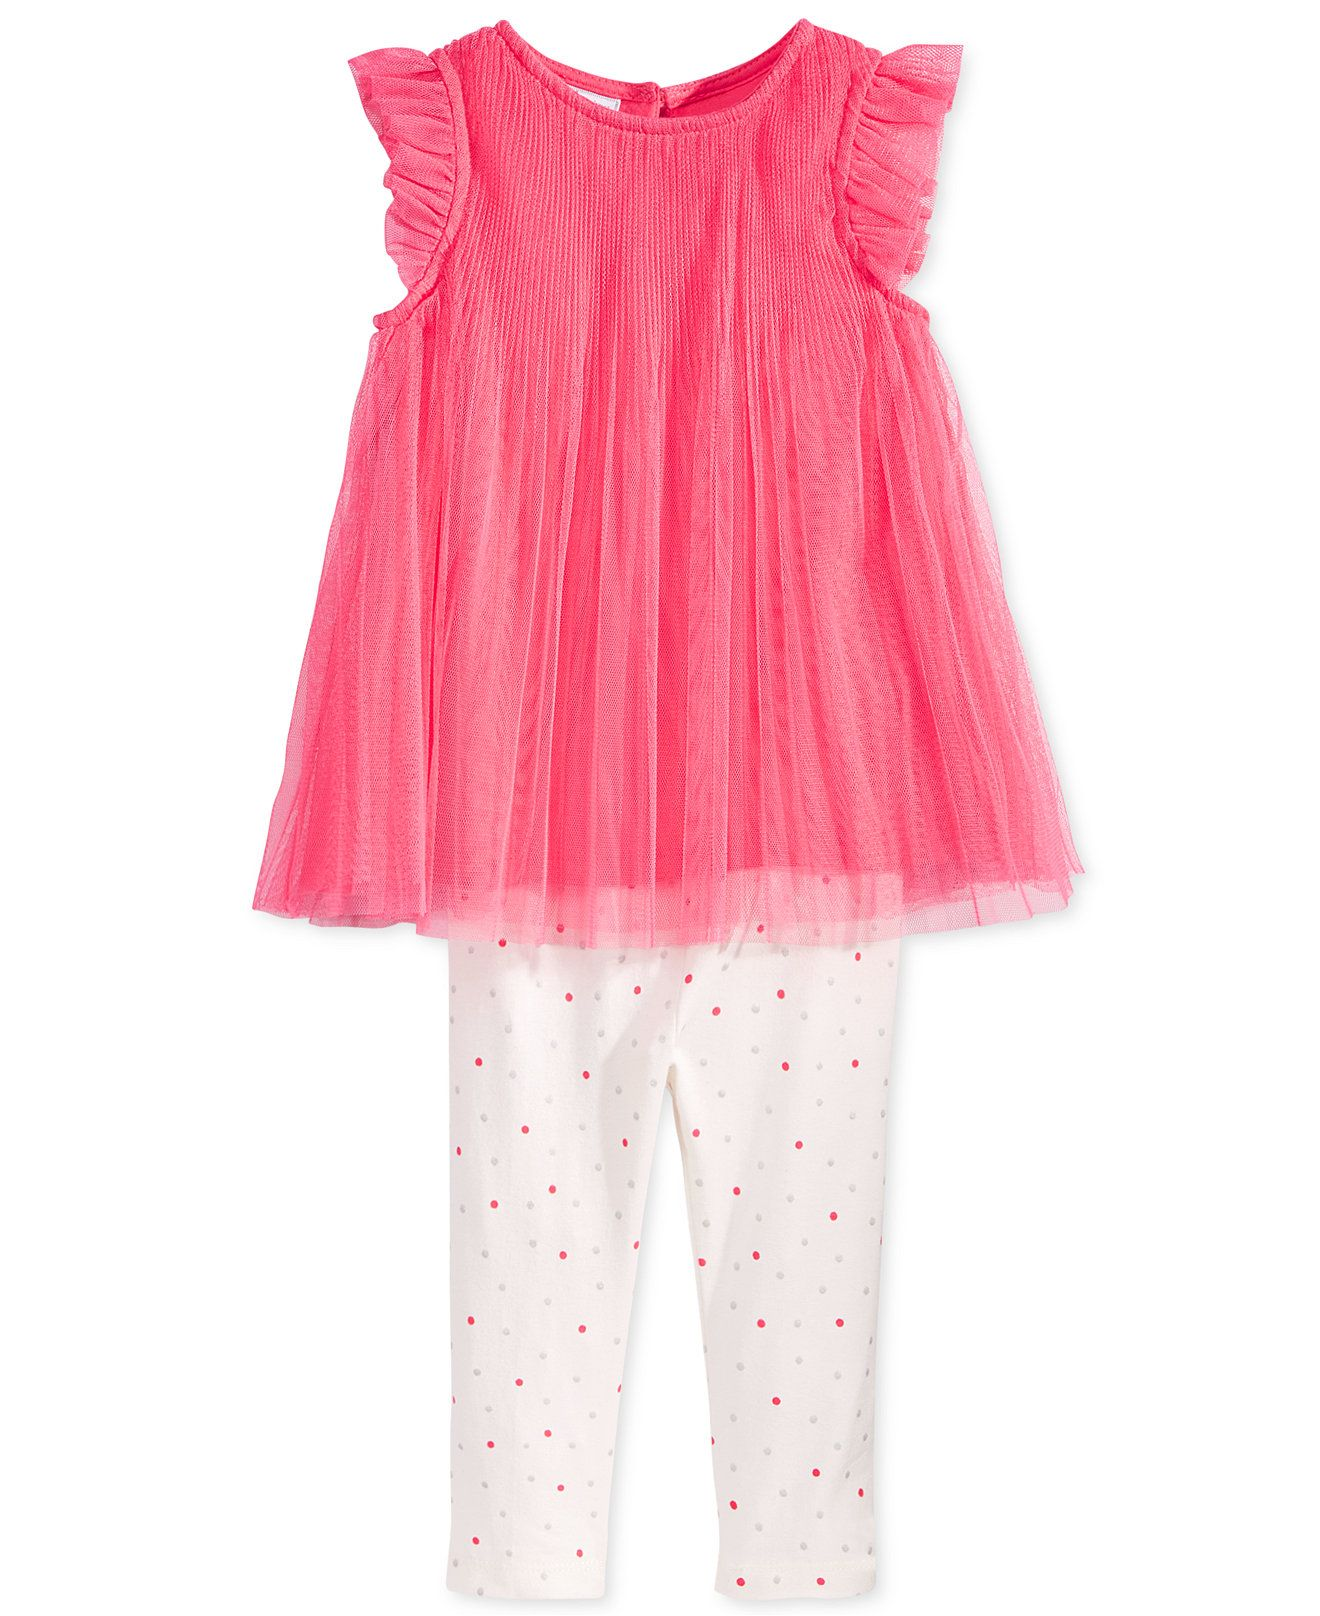 fd53b4d85a5d3 First Impressions Baby Girls' 2-Pc. Pleated Tulle Tunic & Dot-Print Leggings  Set, Only at Macy's - Baby Girl (0-24 months) - Kids & Baby - Macy's